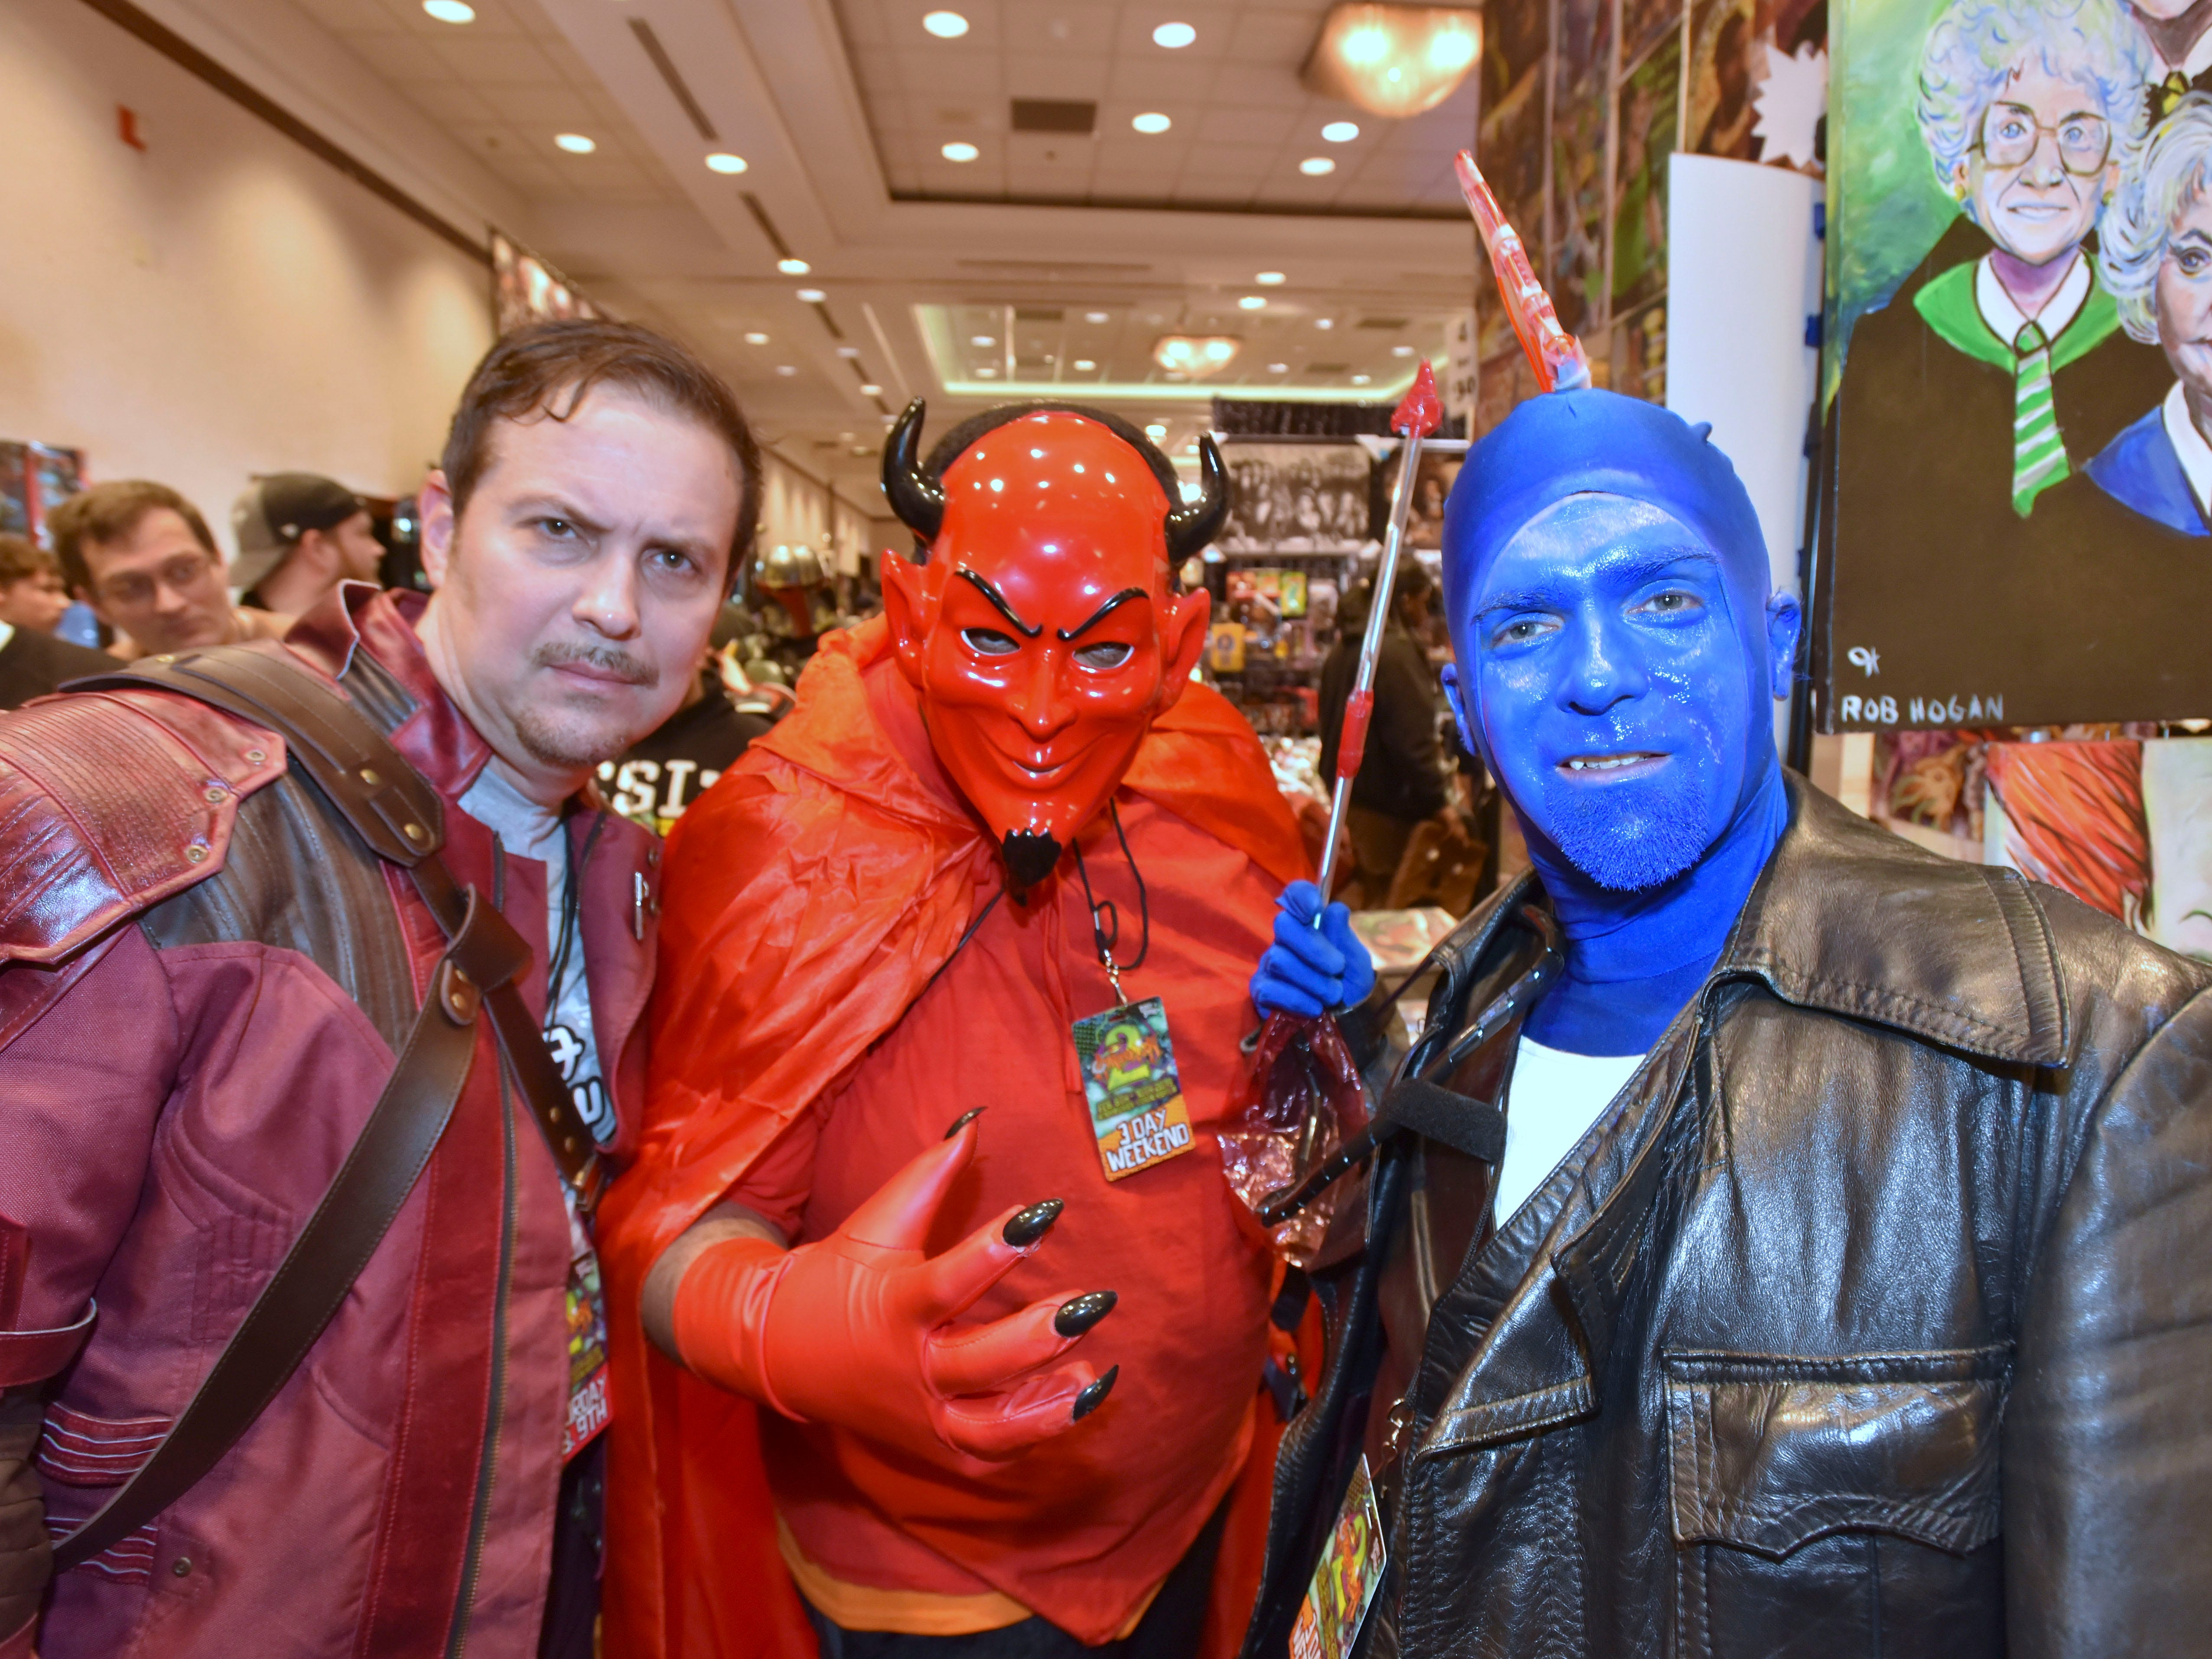 Mike Kars, left, 46, of Madison Heights, portrays Star-Lord as Quinn Spencer, right, 46, of Ferndale, portrays Yondu, both from Guardians of the Galaxy, as DeVante Backer, center, 26, of Warren, portrays Red Devil from Scream Queens.